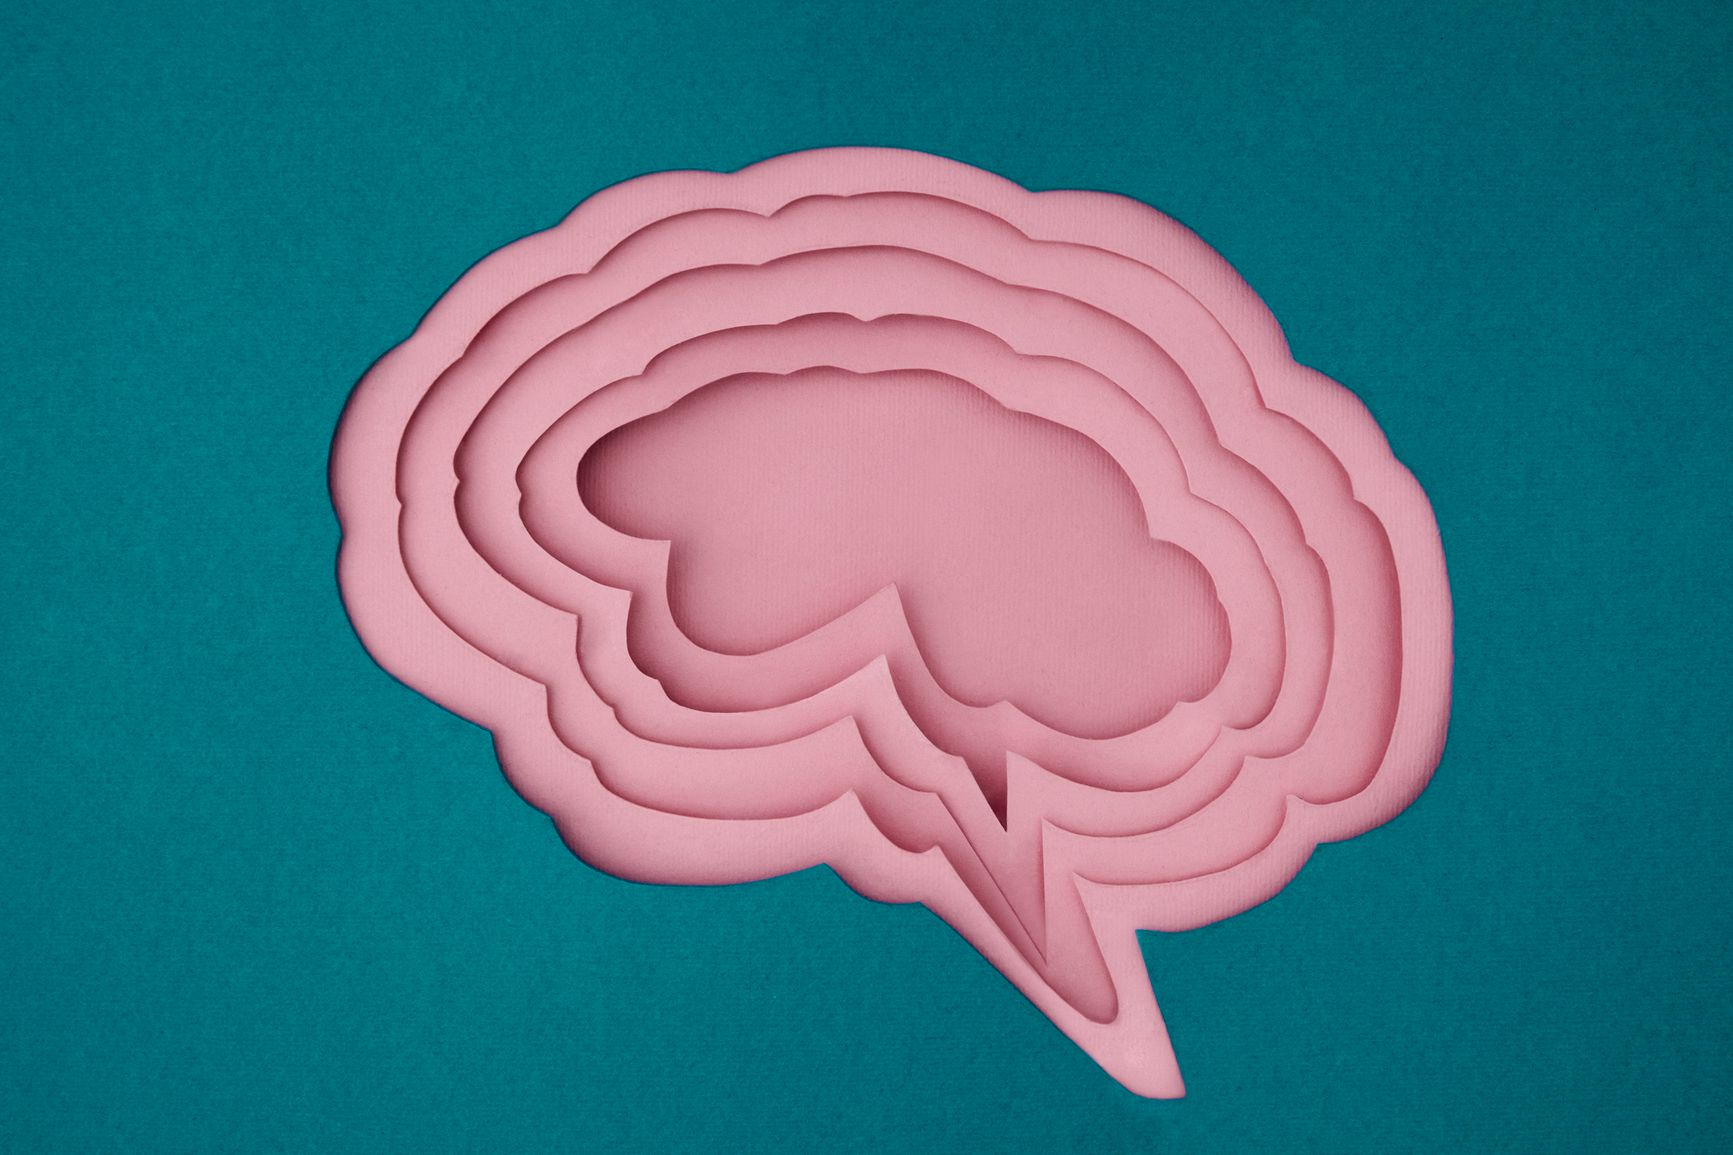 5 Brain Exercises to Strengthen Your Mind